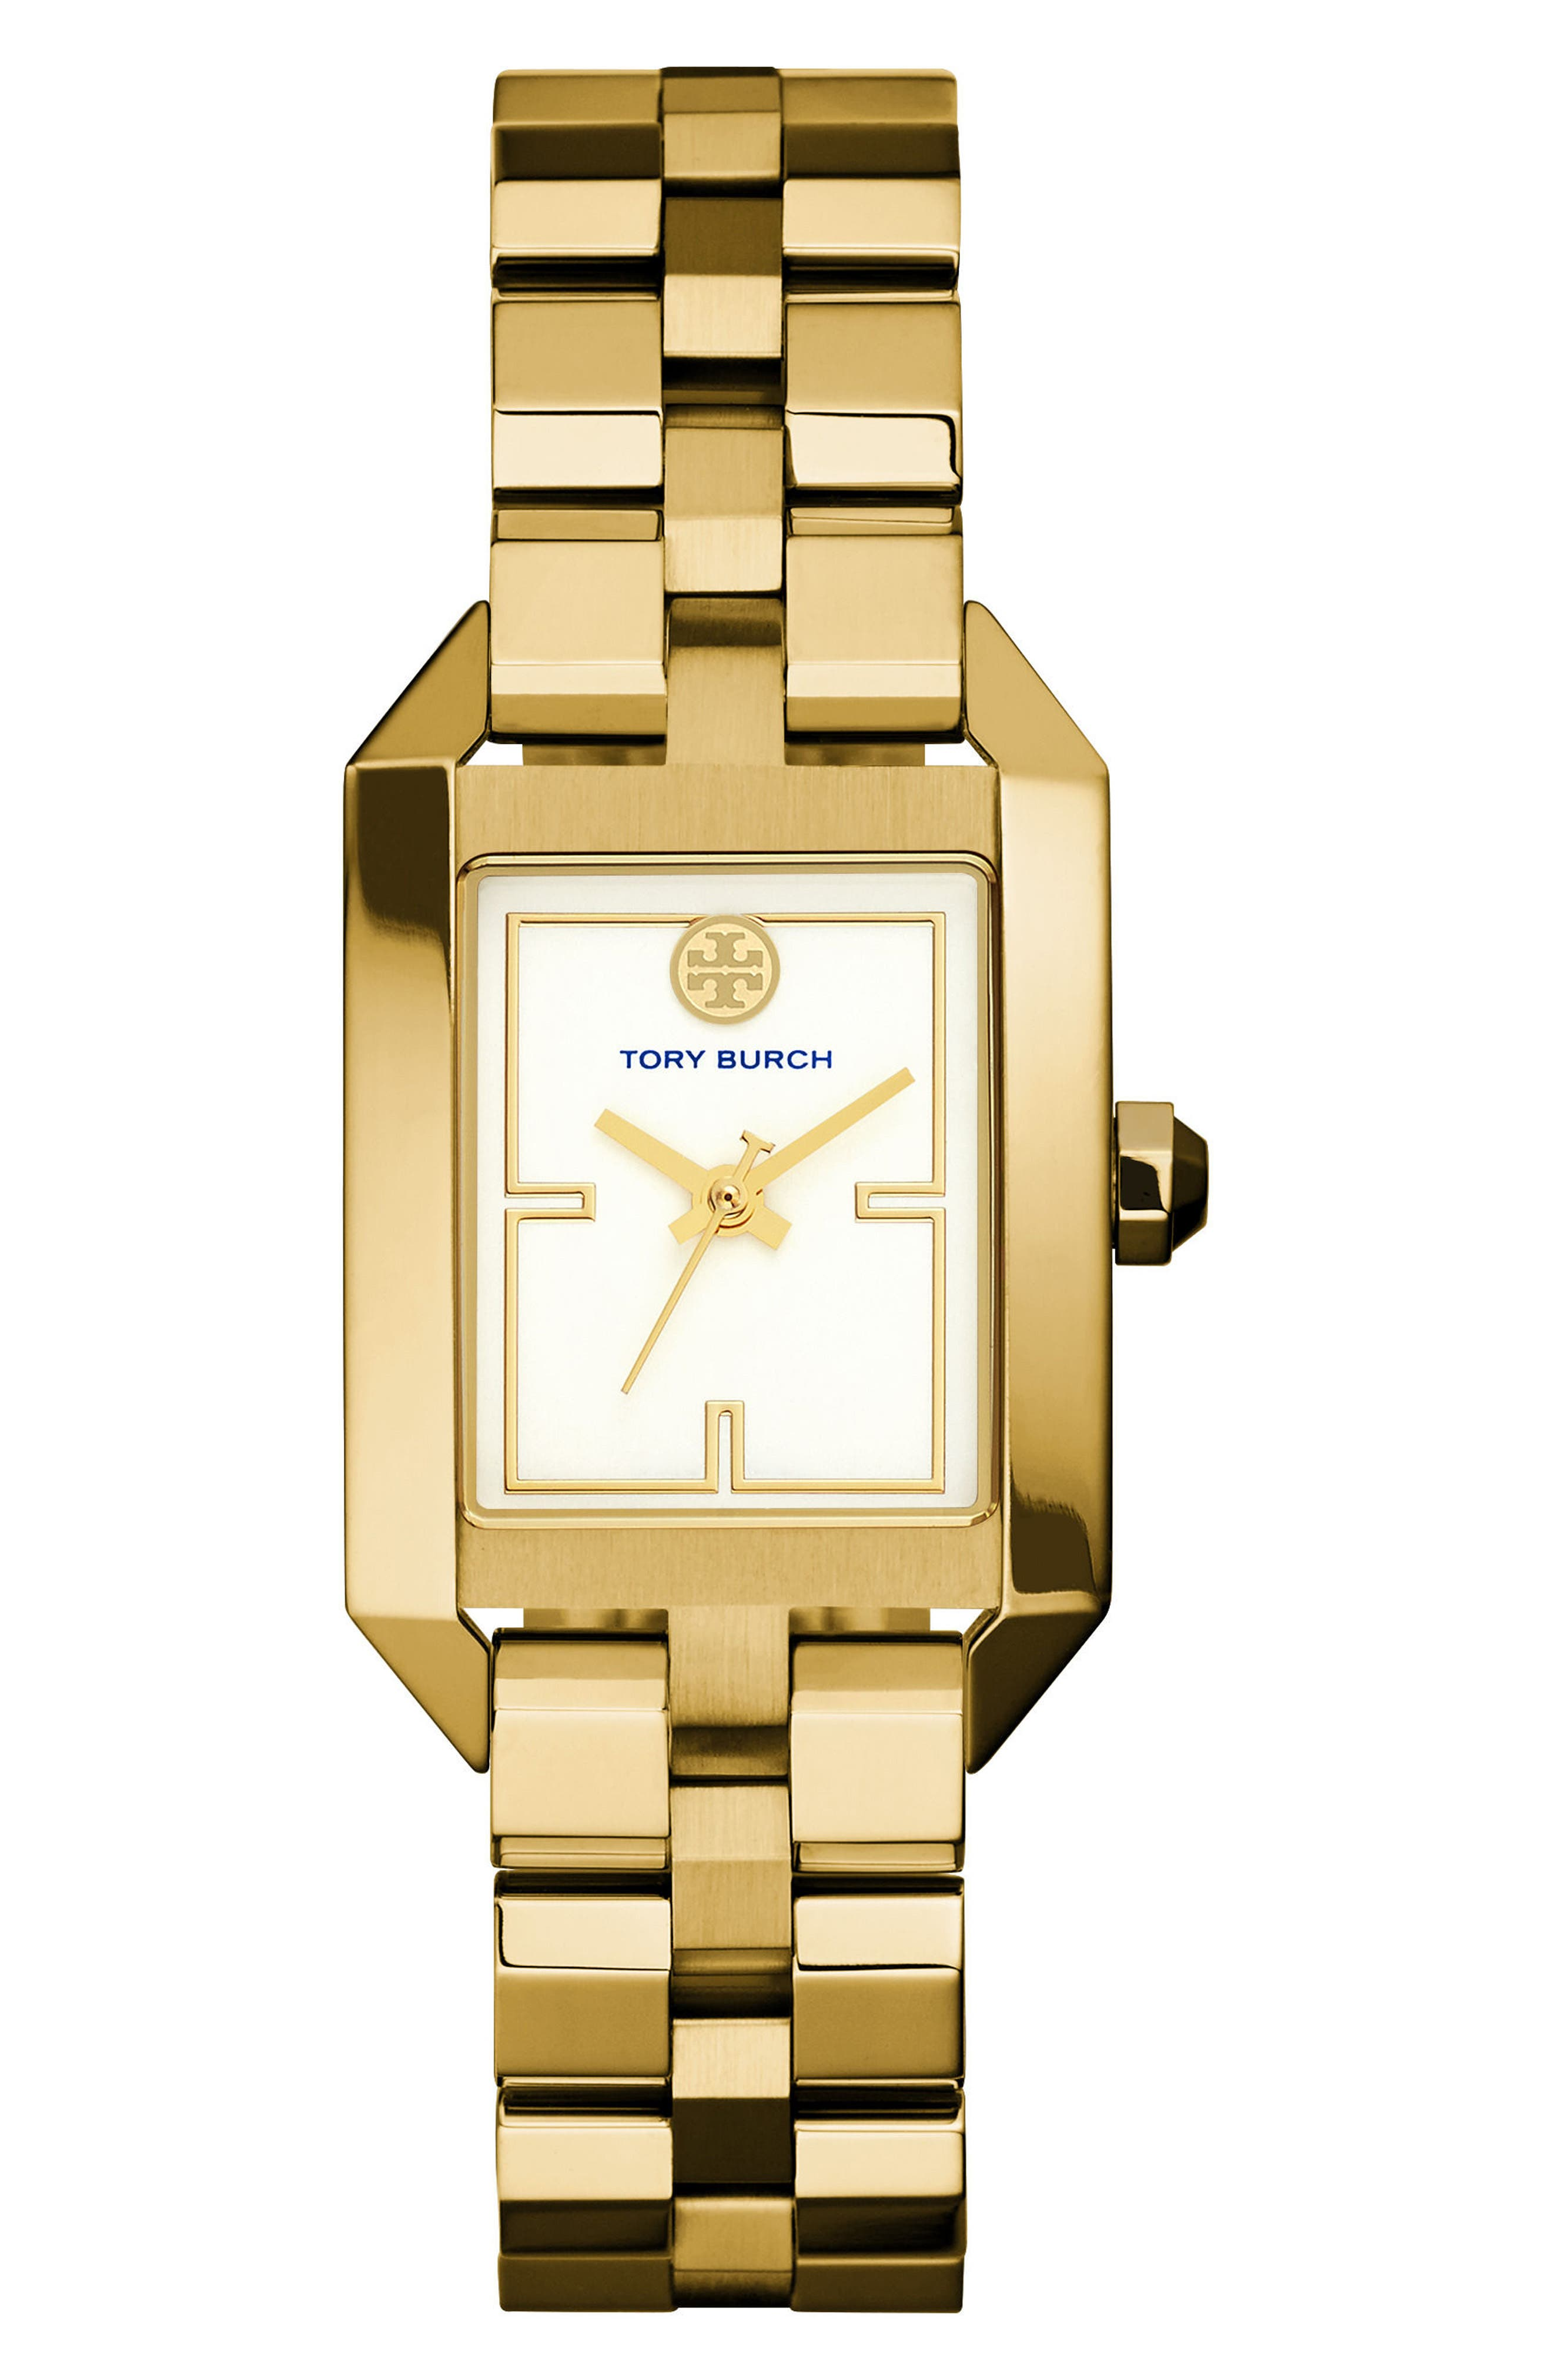 Main Image - Tory Burch Dalloway Bracelet Watch, 23mm x 36.5mm